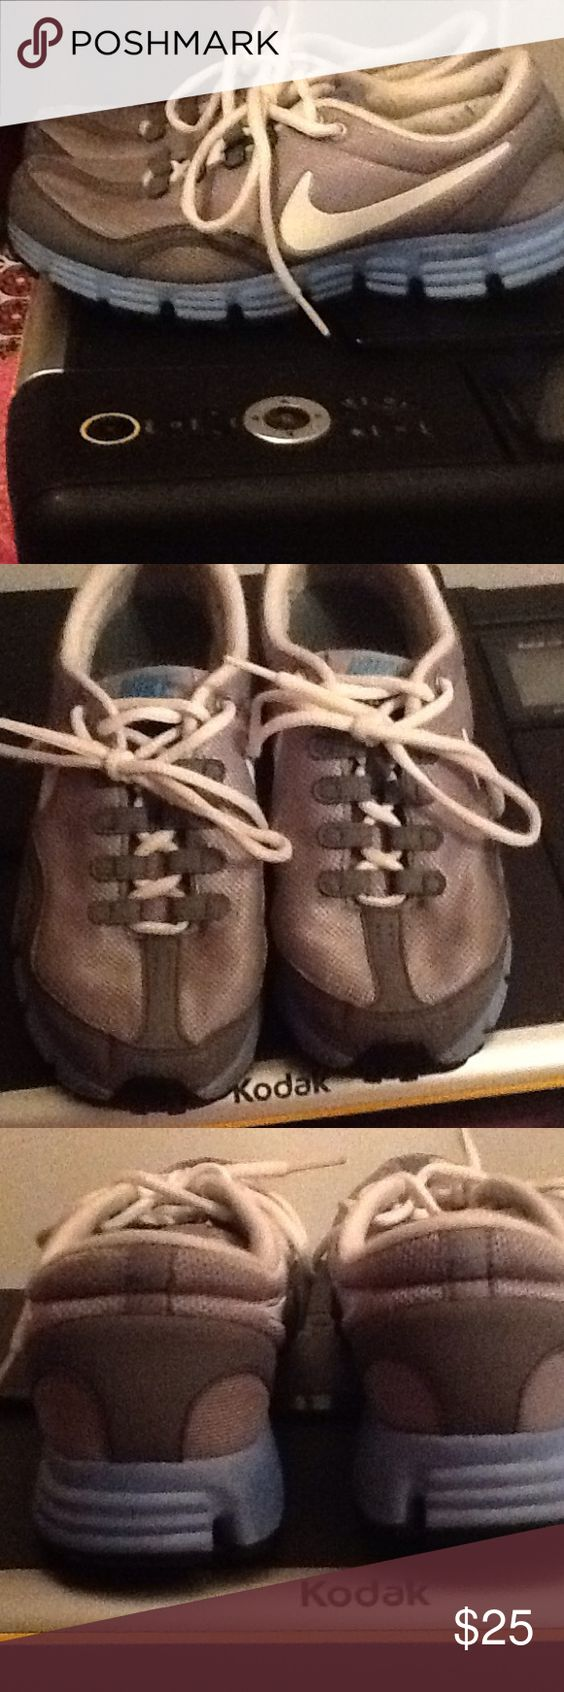 SIZE 7 NIKE DUAL FUSION RUNNING SHOE WOMENS STYLISH AND CUTE USED VERY GENTLY SIZE 7 NIKE DUAL FUSION RUNNING SHOE VERY COMFORTABLE Nike Shoes Athletic Shoes